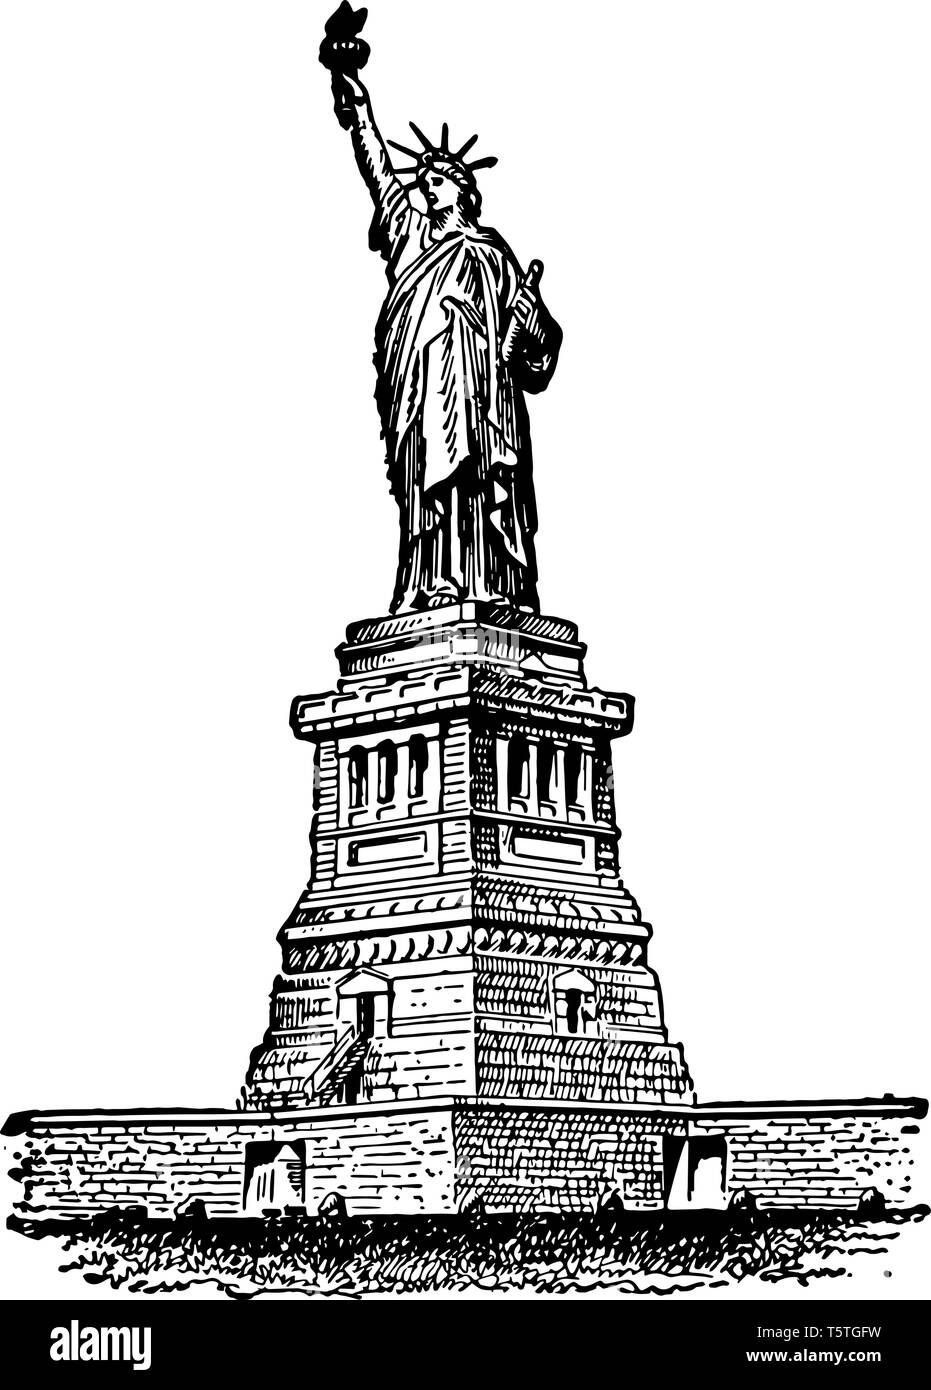 Statue of liberty is a copper statue located on liberty island, New york harbor, new york city, US vintage line drawing. Stock Vector